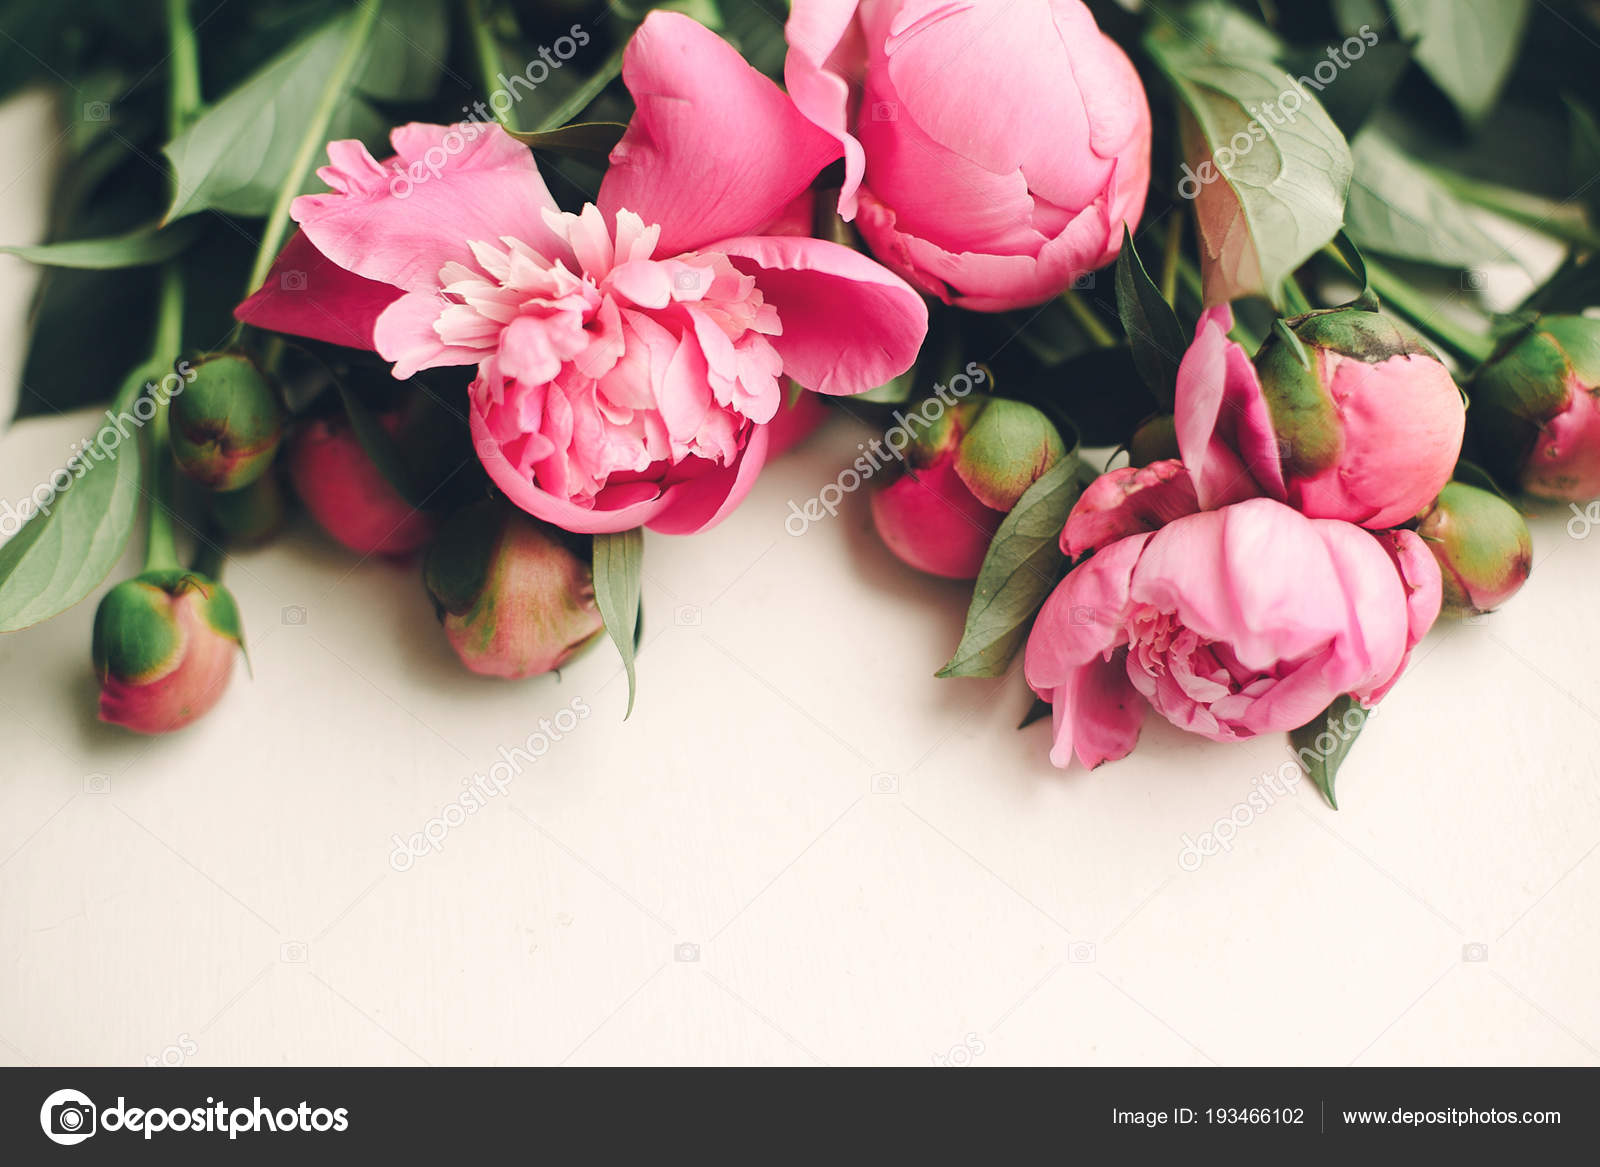 Lovely pink peonies rustic white wooden background top view space lovely pink peonies on rustic white wooden background top view space for text floral greeting card flat lay beautiful flowers pattern tender image mightylinksfo